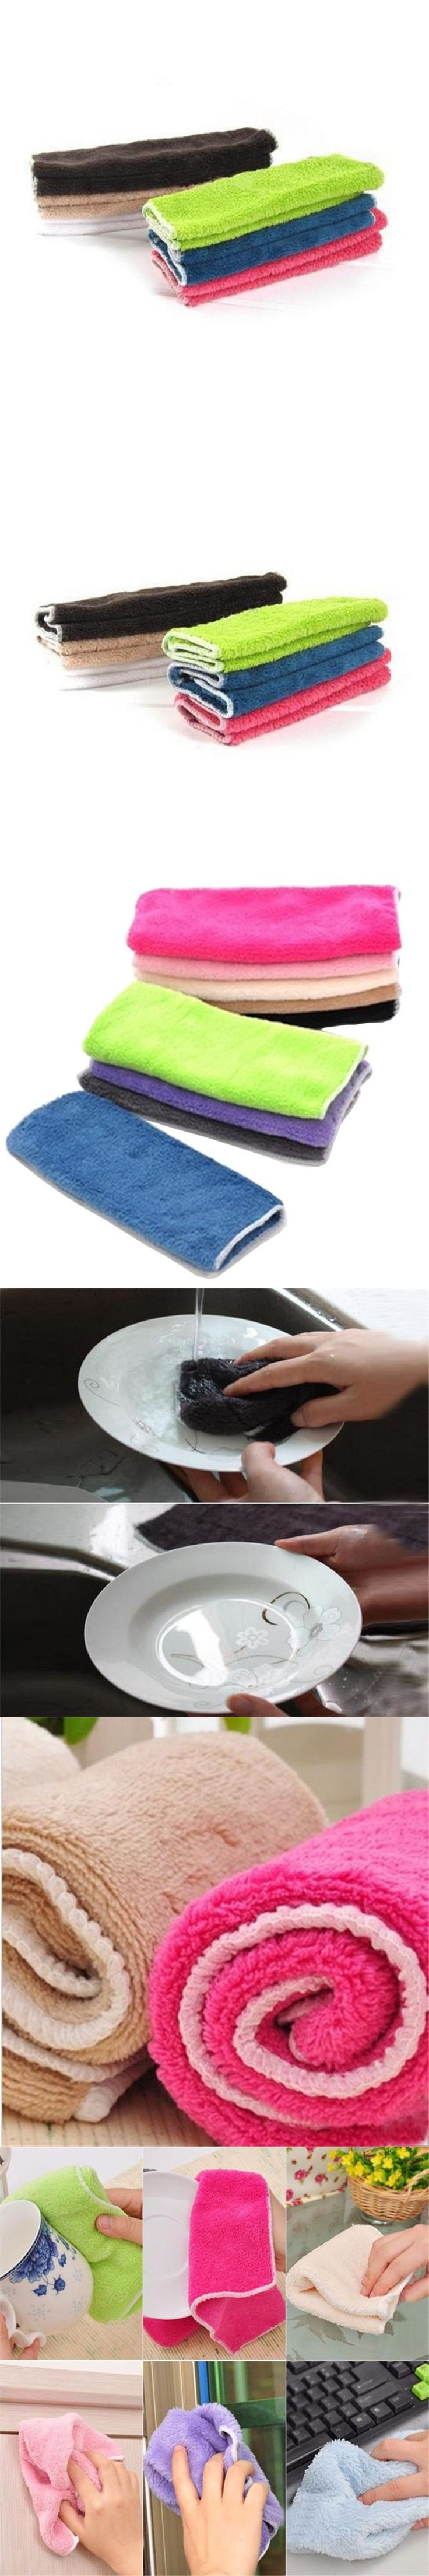 Anti-grease Cloth Bamboo Fiber Washing Towel Magic Kitchen Cleaning Wiping Rags Jul22 Professional Factory price Drop Shipping